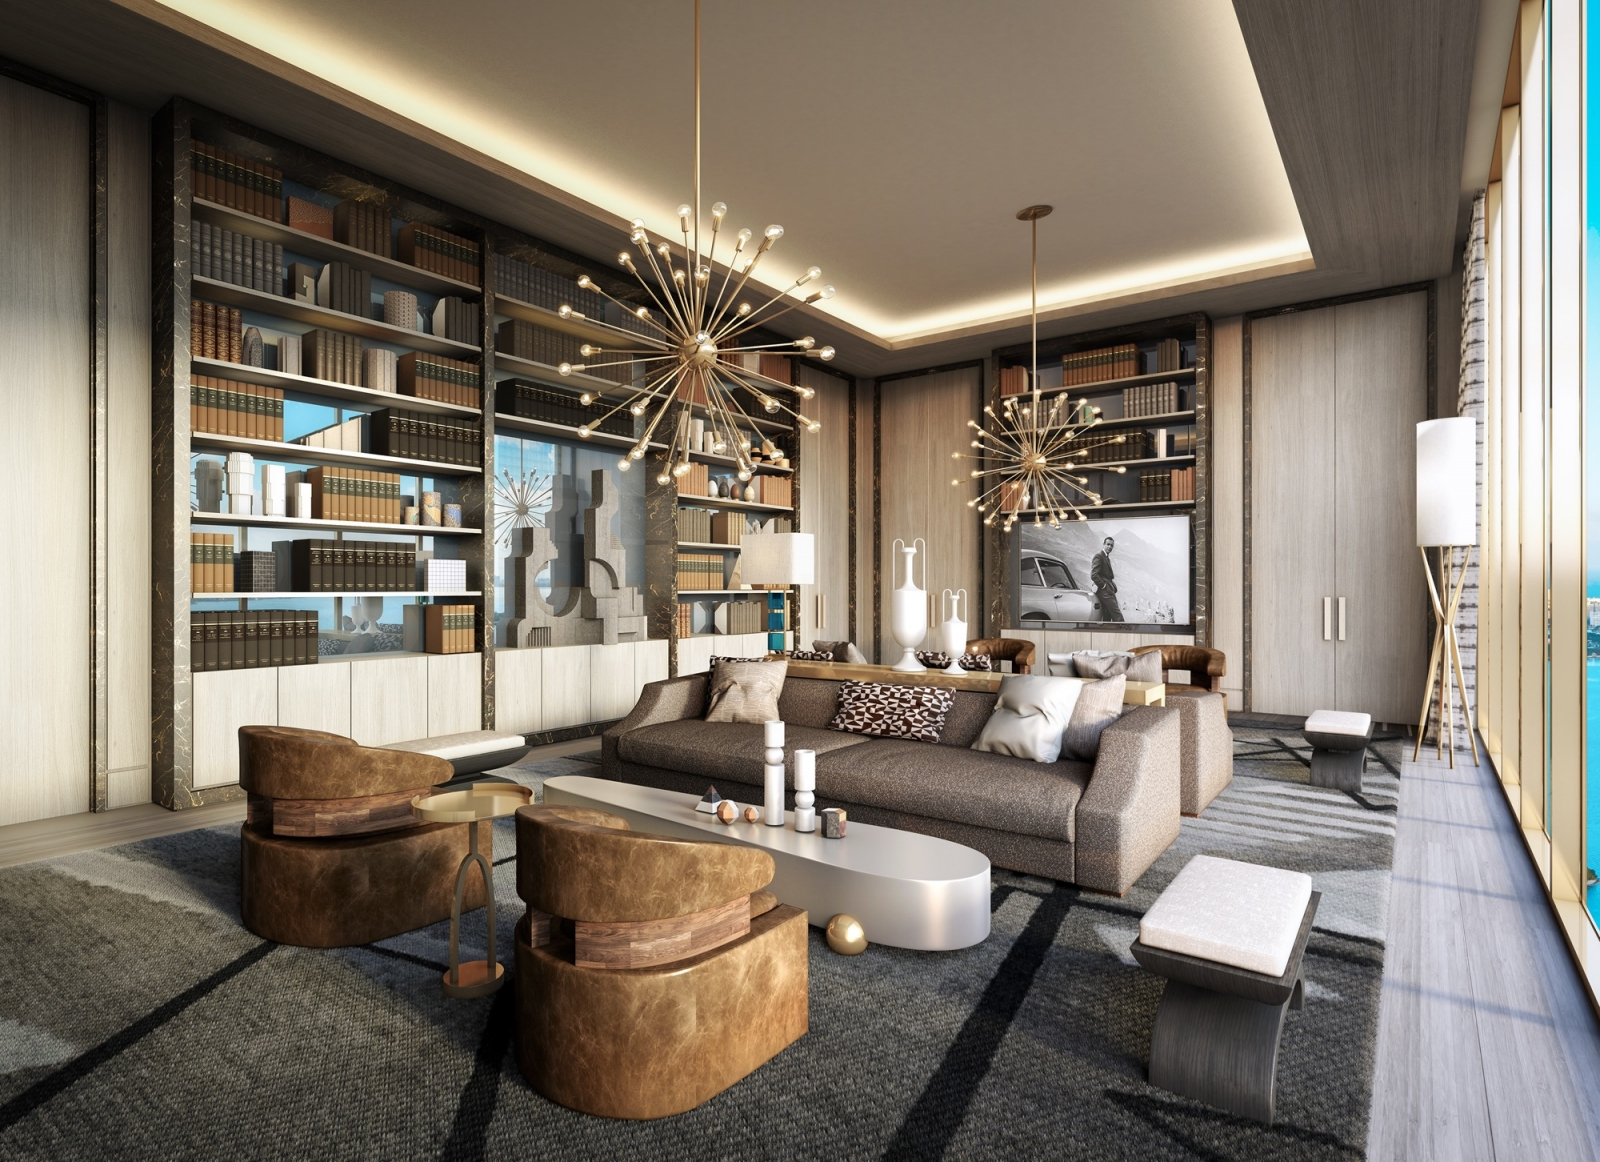 home décor ideas, exclusive design, home décor, interior design, contemporary design, architecture, jean-louis deniot, luxury homes, Miami condos, AD100 jean-louis deniot The Outstanding Elysee Miami Condos by Jean-Louis Deniot The Outstanding Elysee Miami Condos by Jean Louis Deniot 11